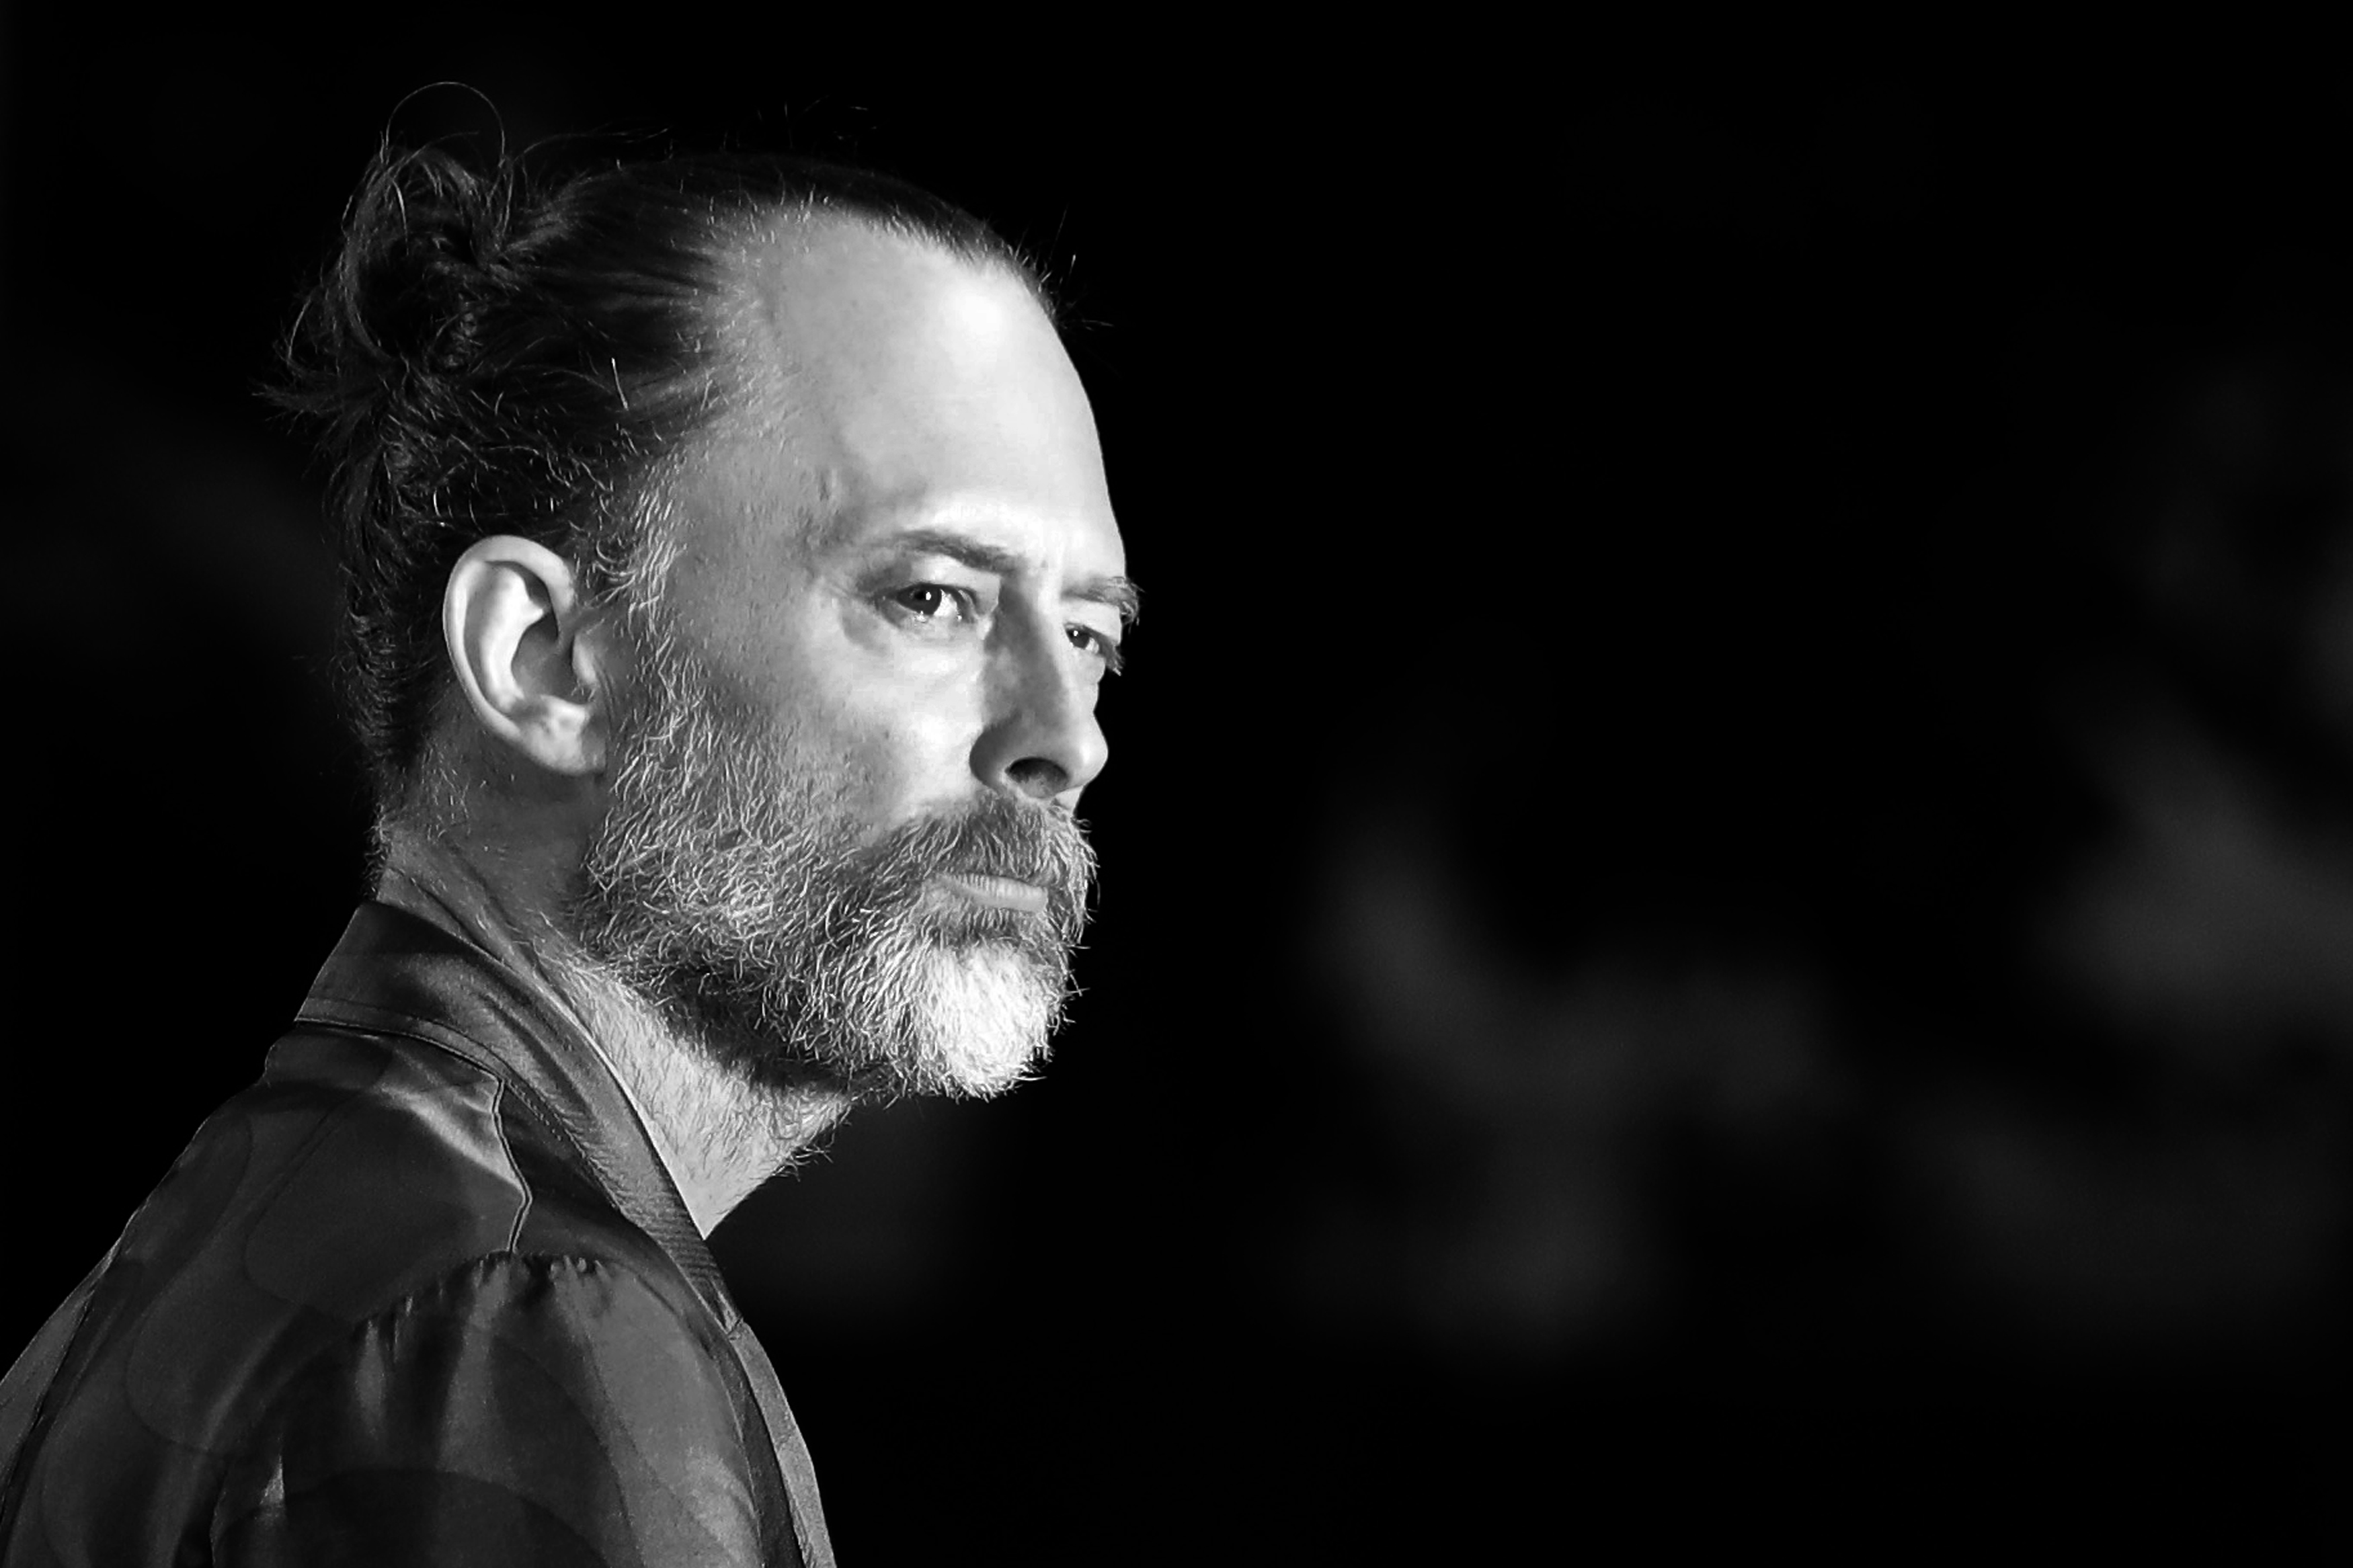 Radiohead frontman Thom Yorke will not be able to attend the 2019 Rock and Roll Hall of Fame induction ceremony on 29 March due to prior commitments. (Photo: Getty Images)